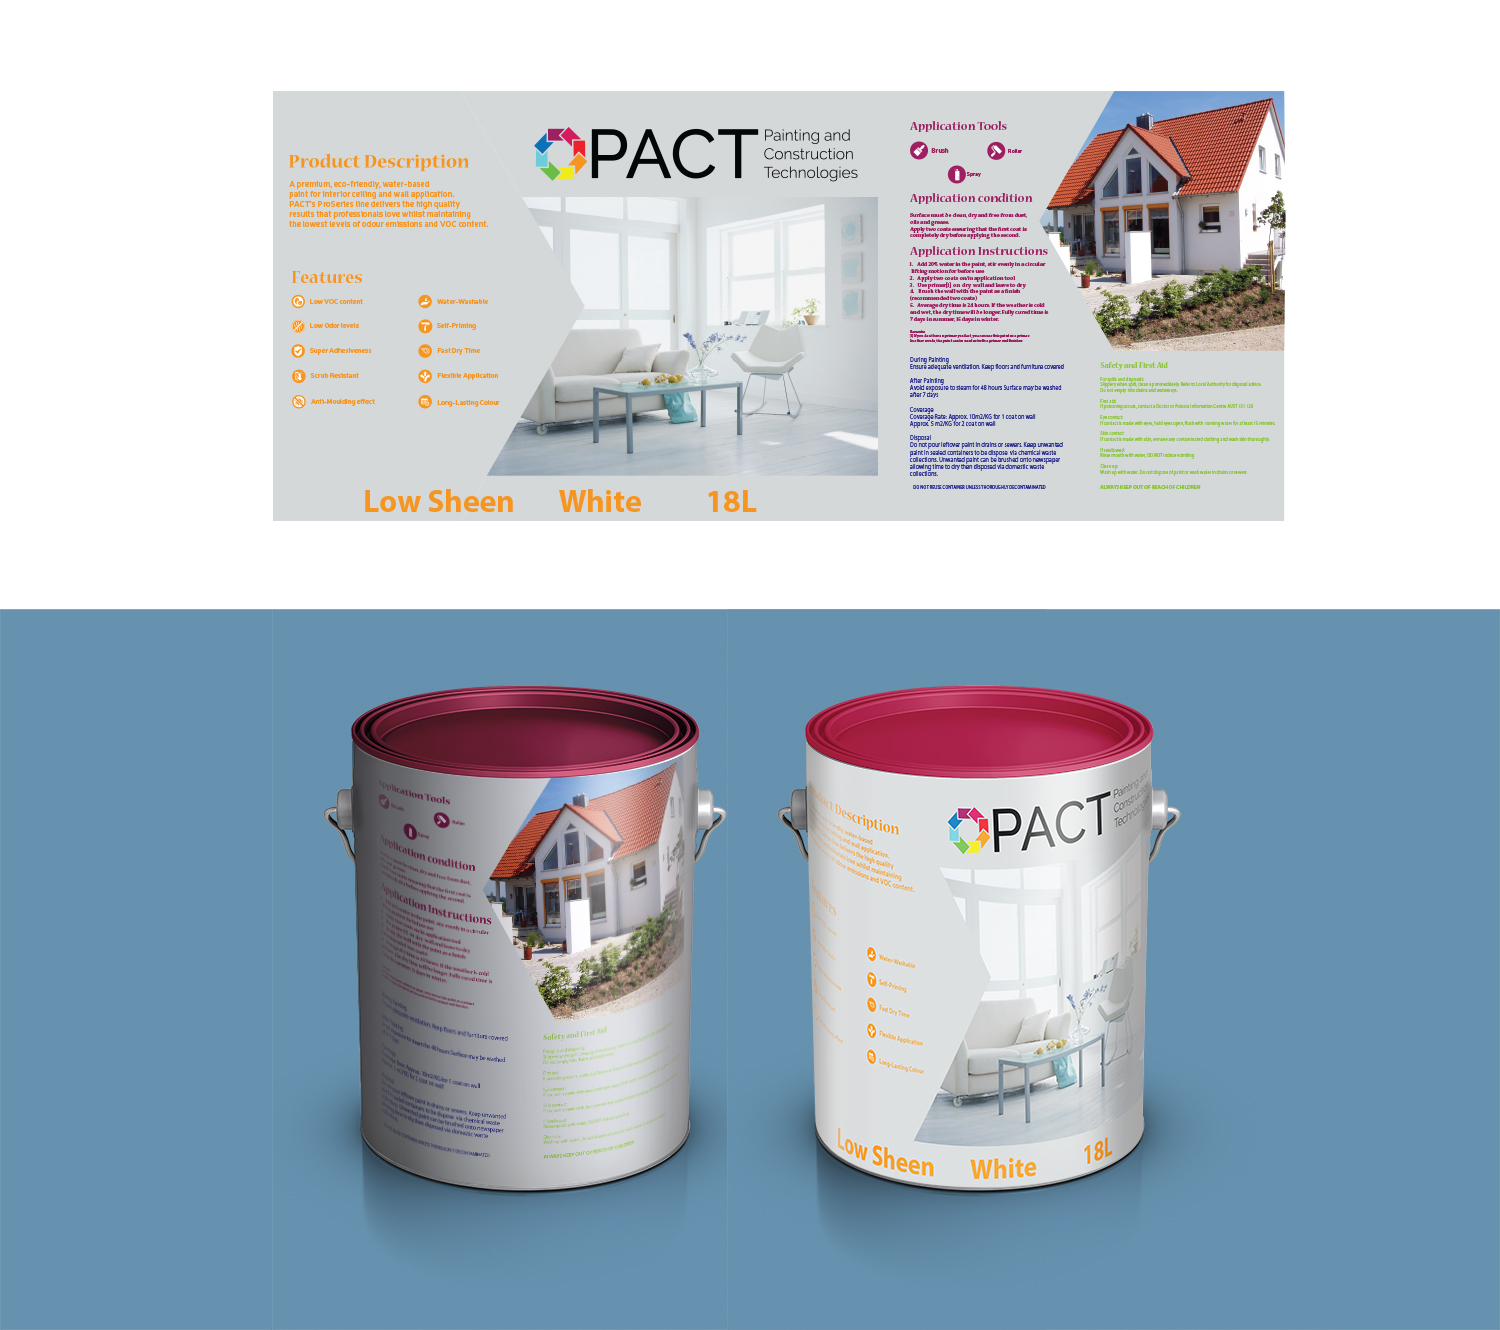 Serious Professional Paint Label Design For Pact By Beezu Design 18628822